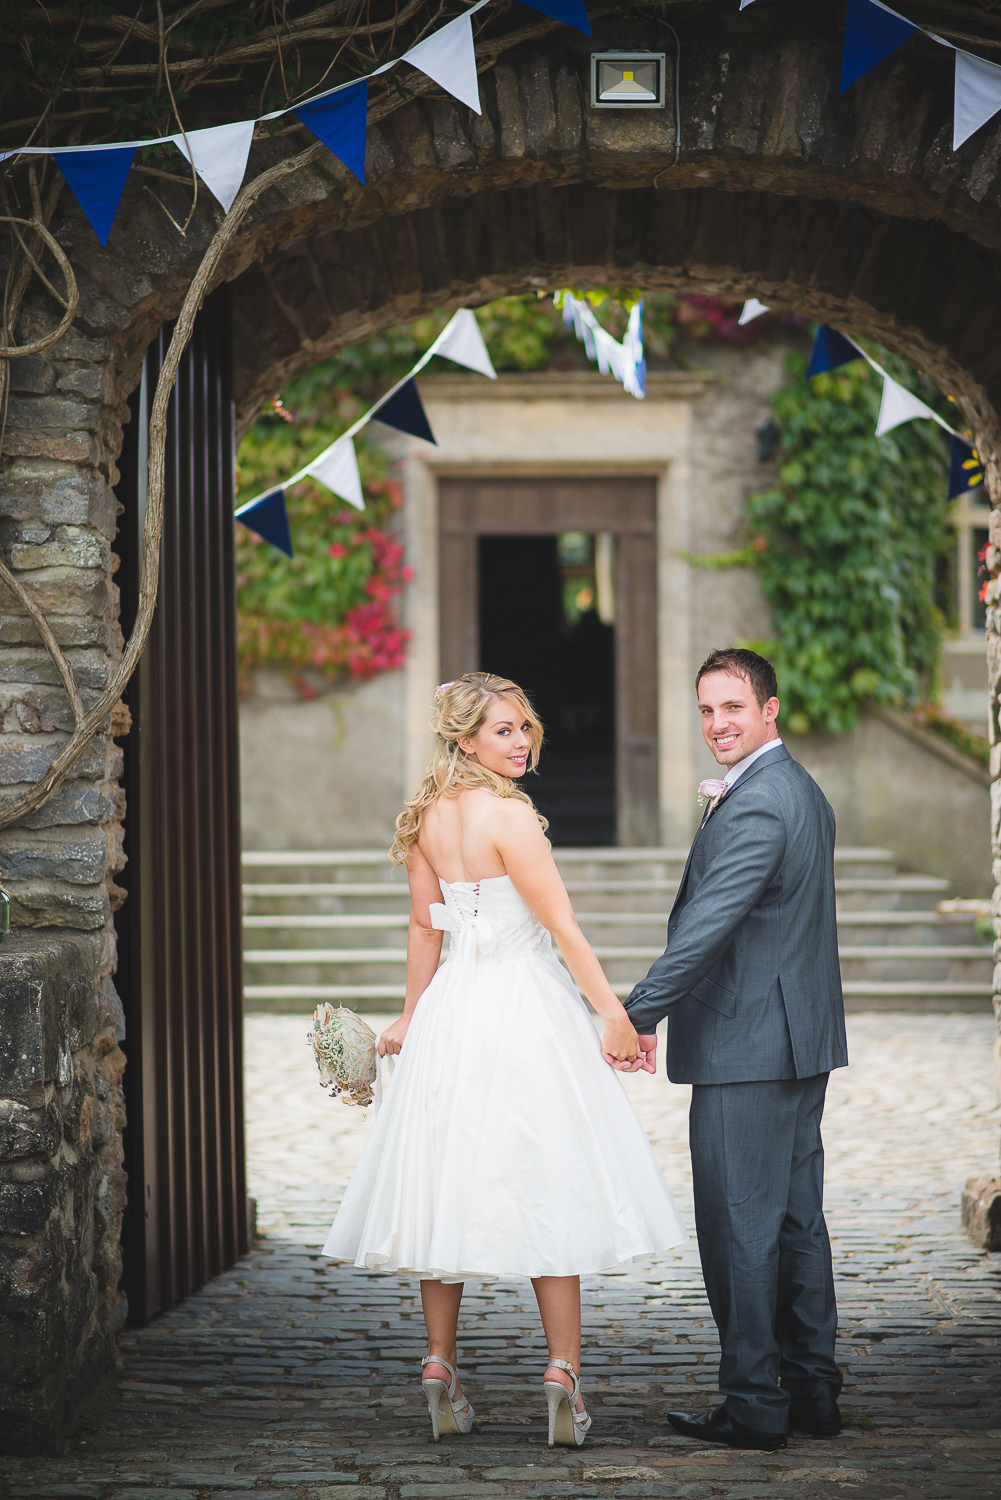 Walton-castle-wedding-photographer-clevedon-3.jpg